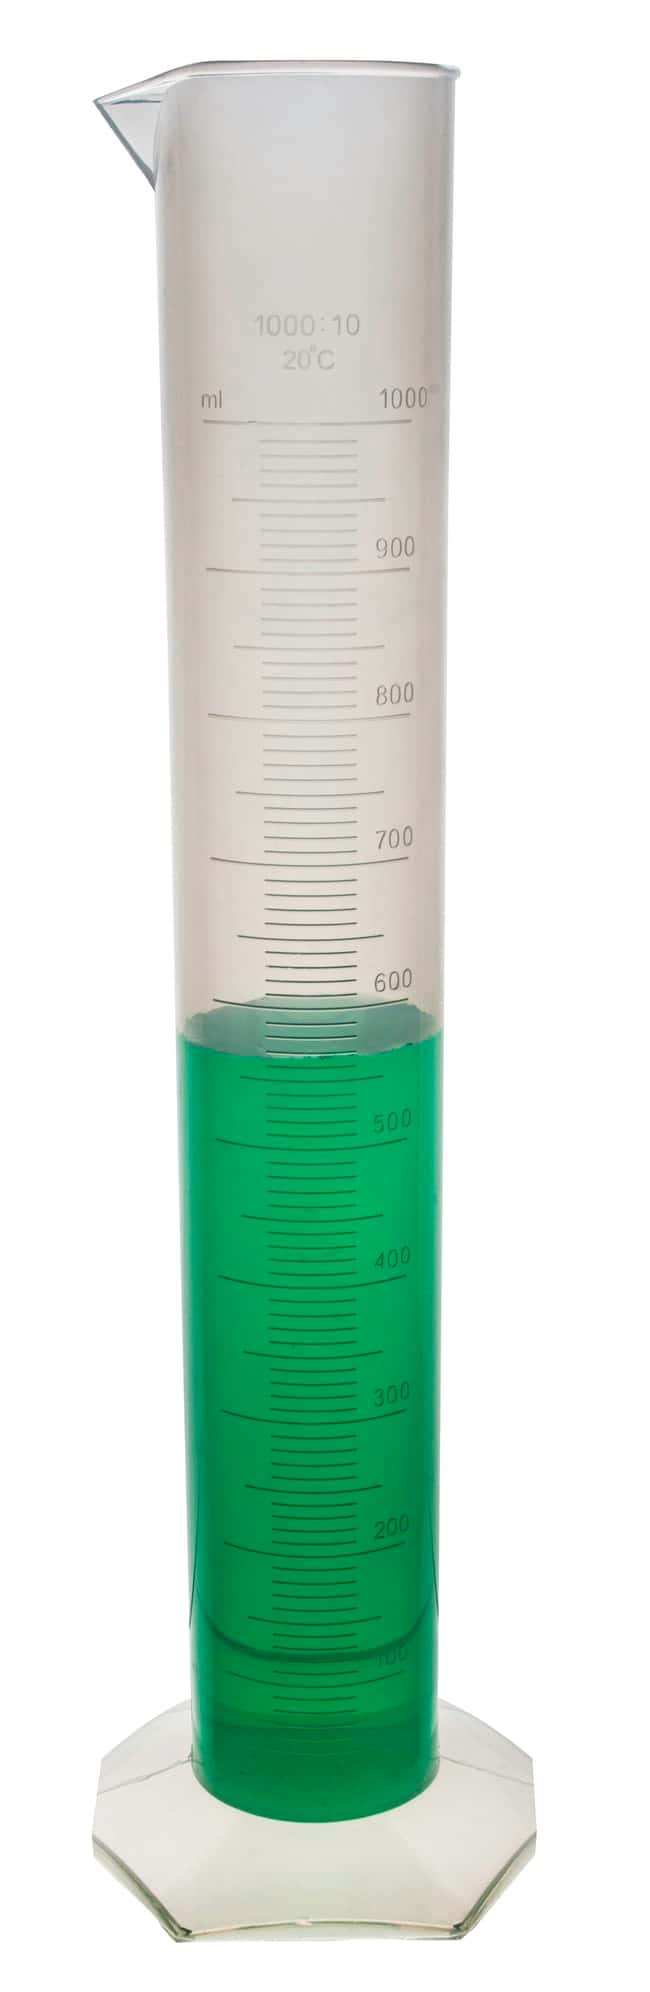 Eisco™ Polypropylene Cylinders